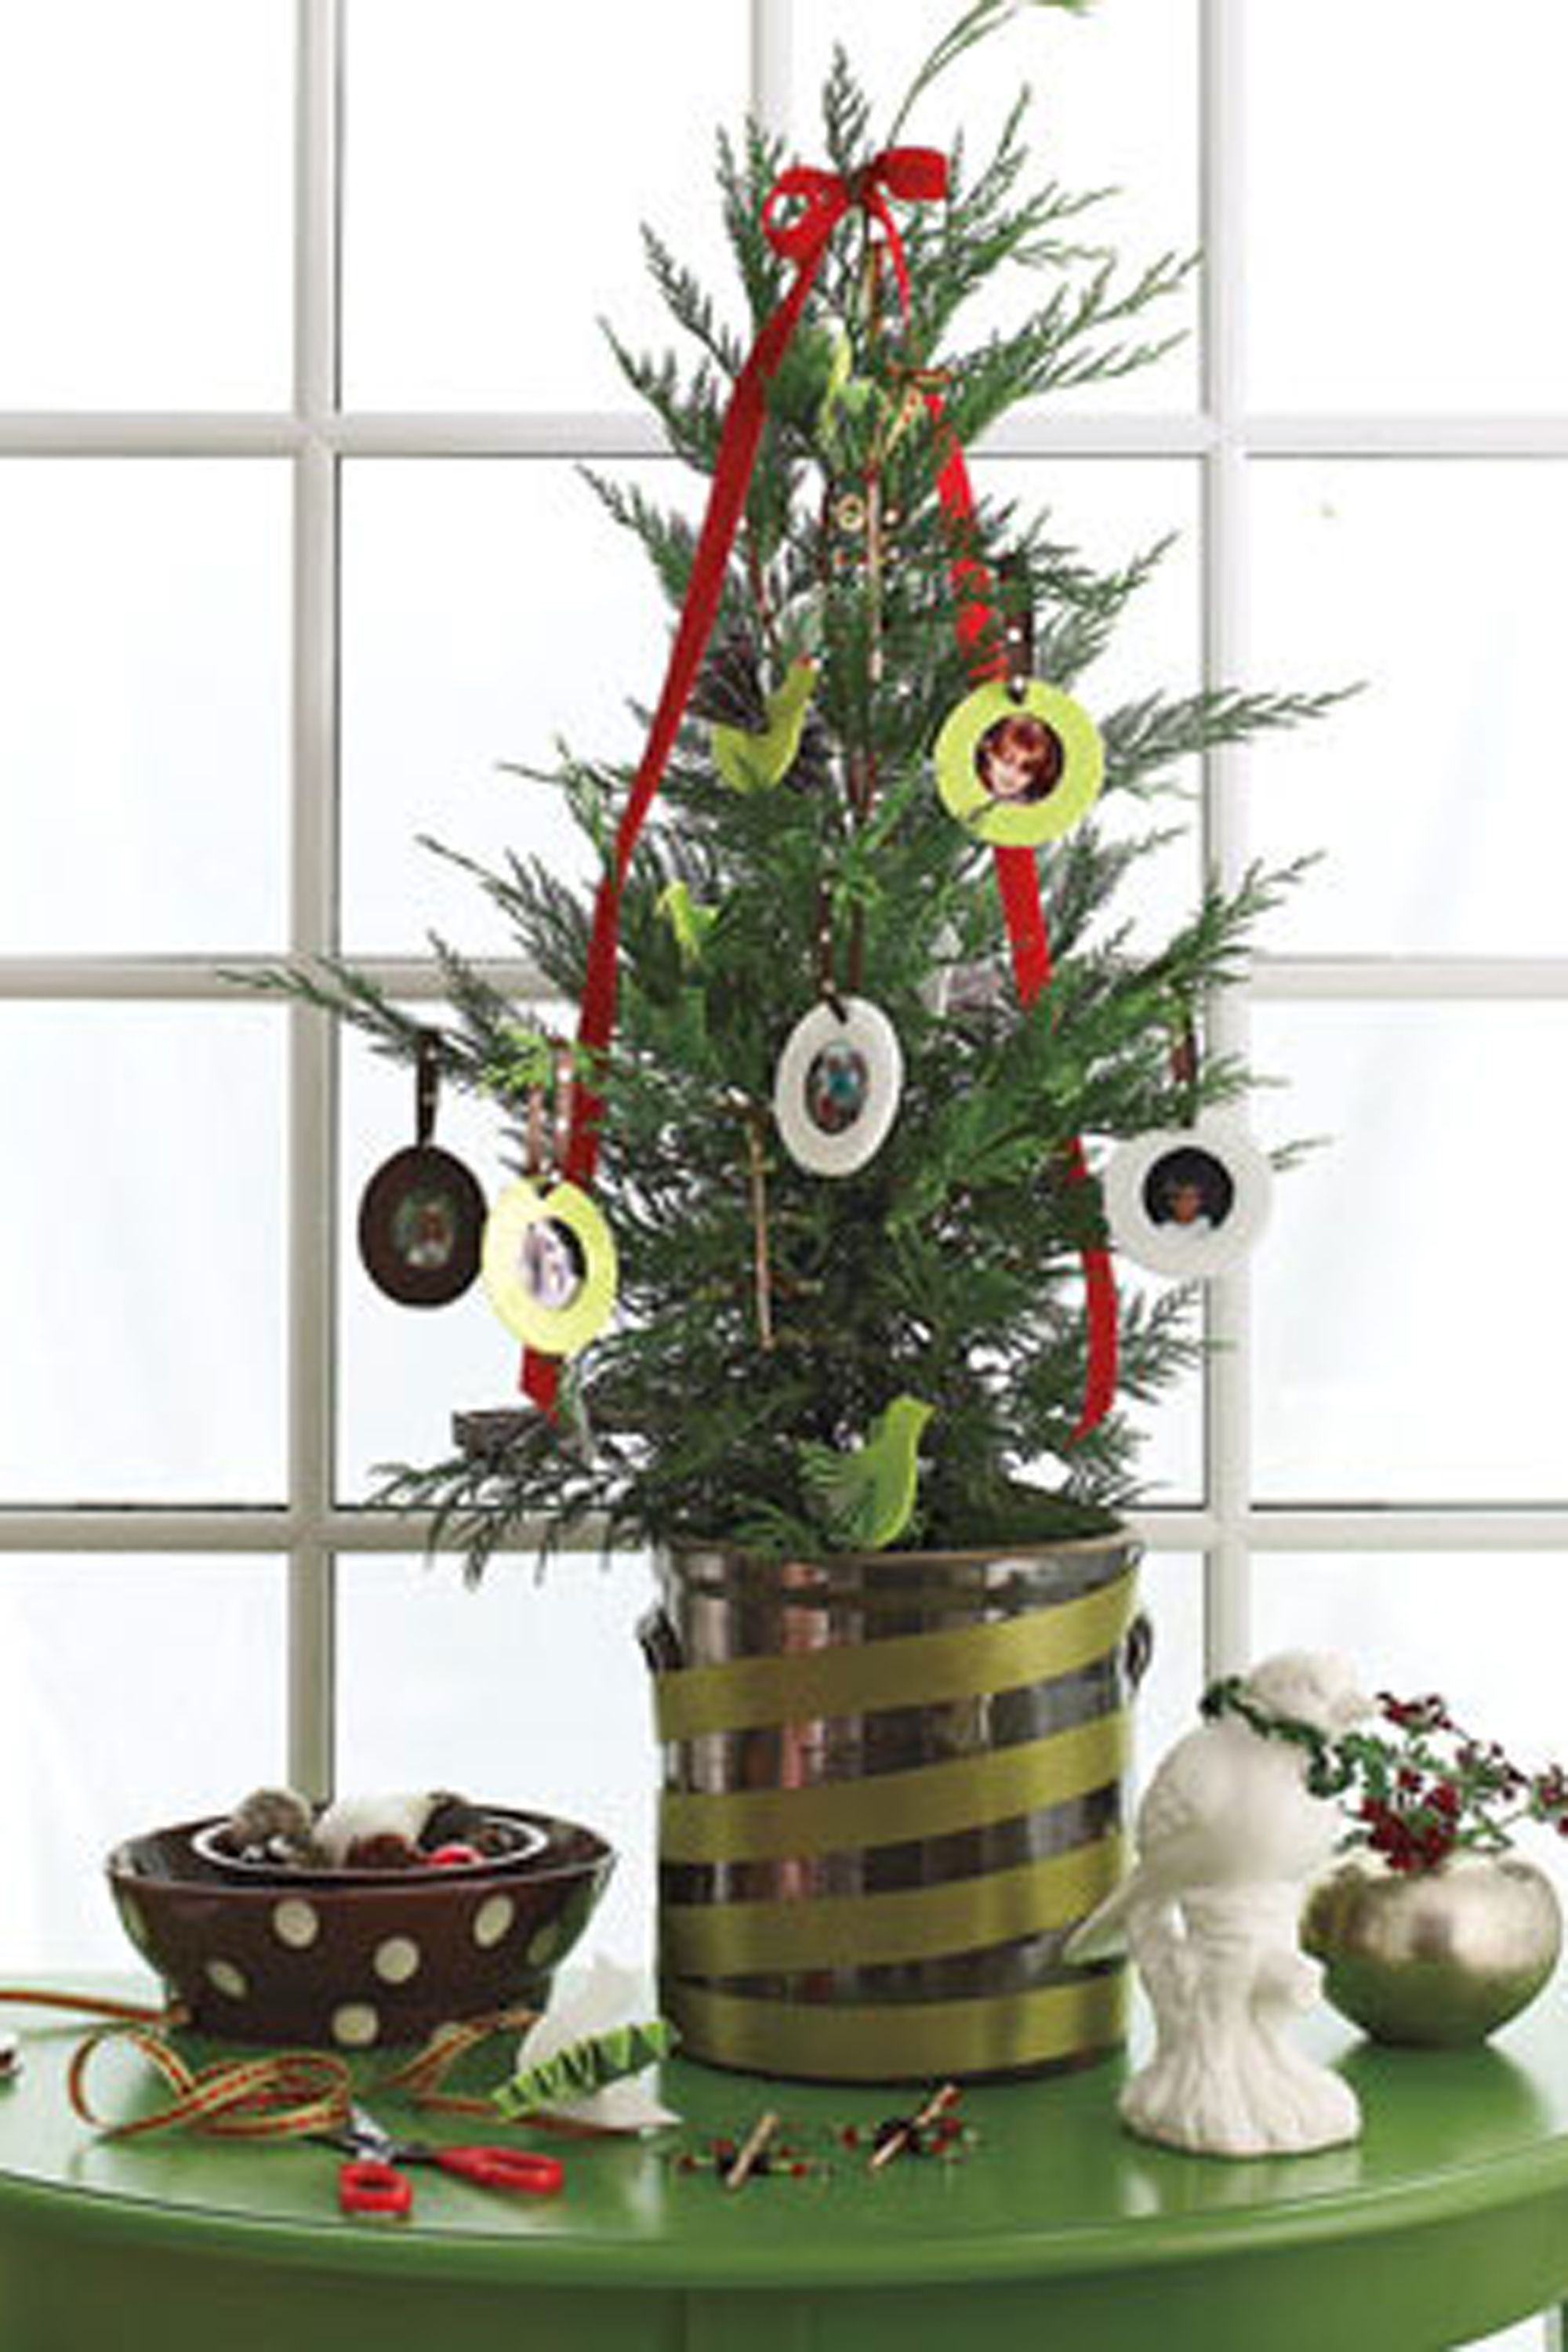 47 Easy DIY Christmas Decorations - Homemade Ideas for Holiday ...